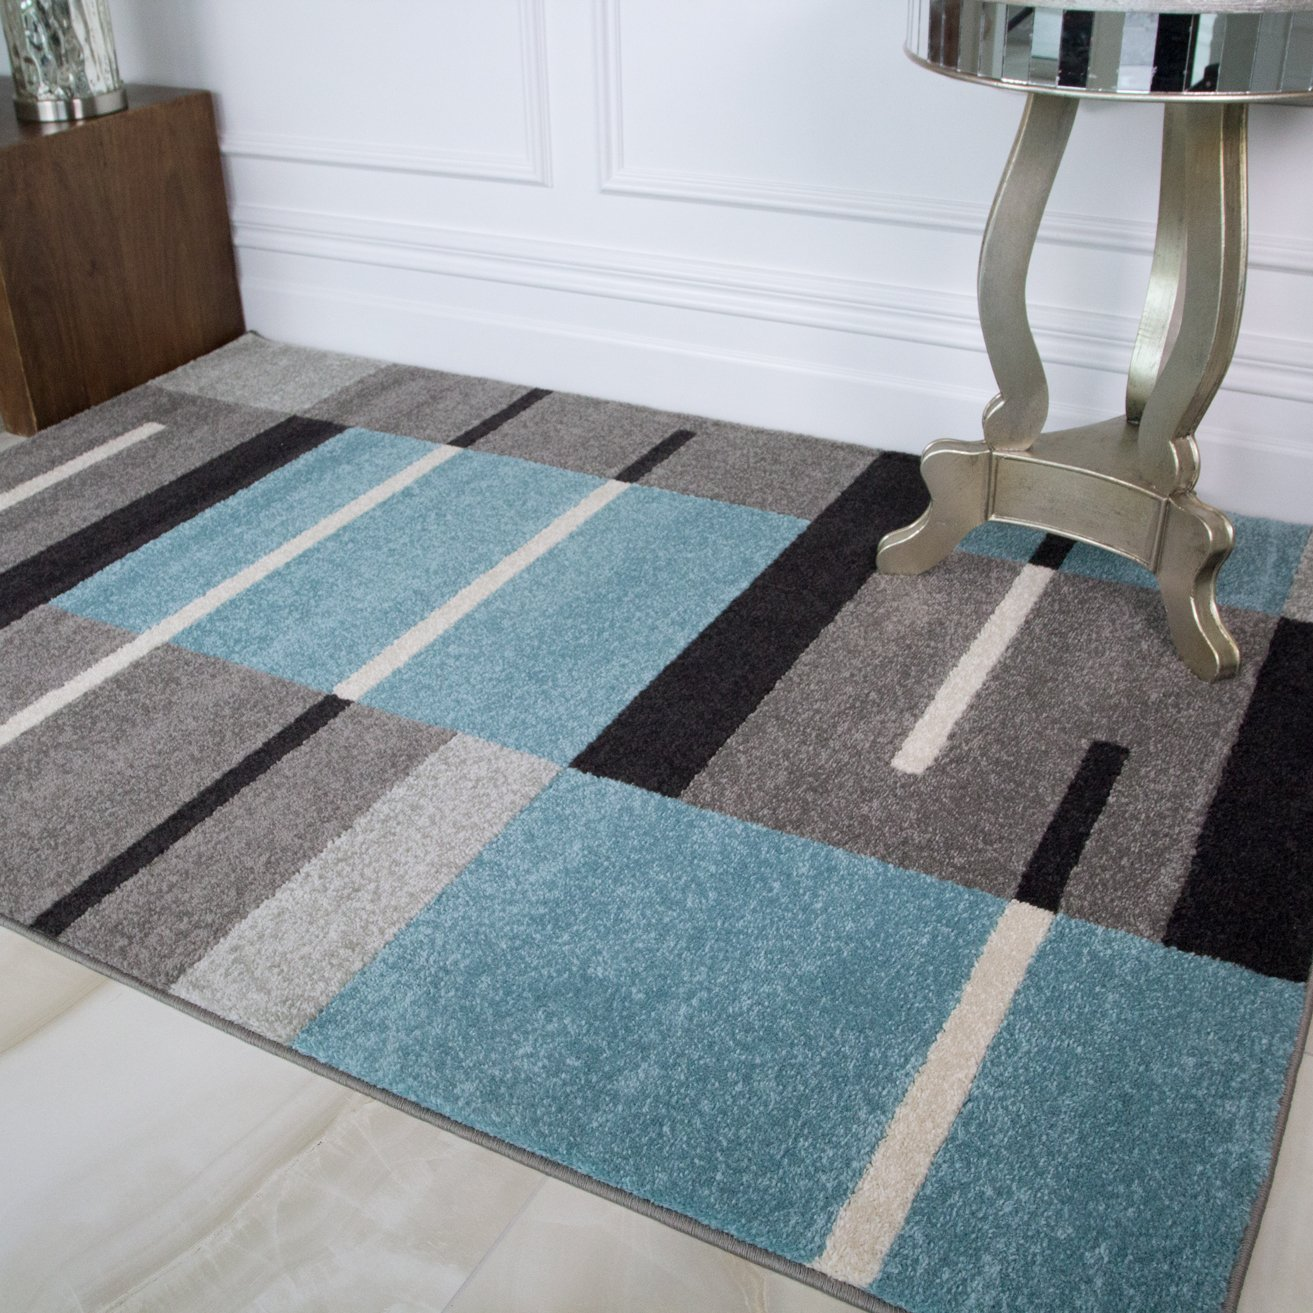 Details About Powder Blue Gray Patchwork Rugs Cheap Geometric Living Room Floor Area Rug